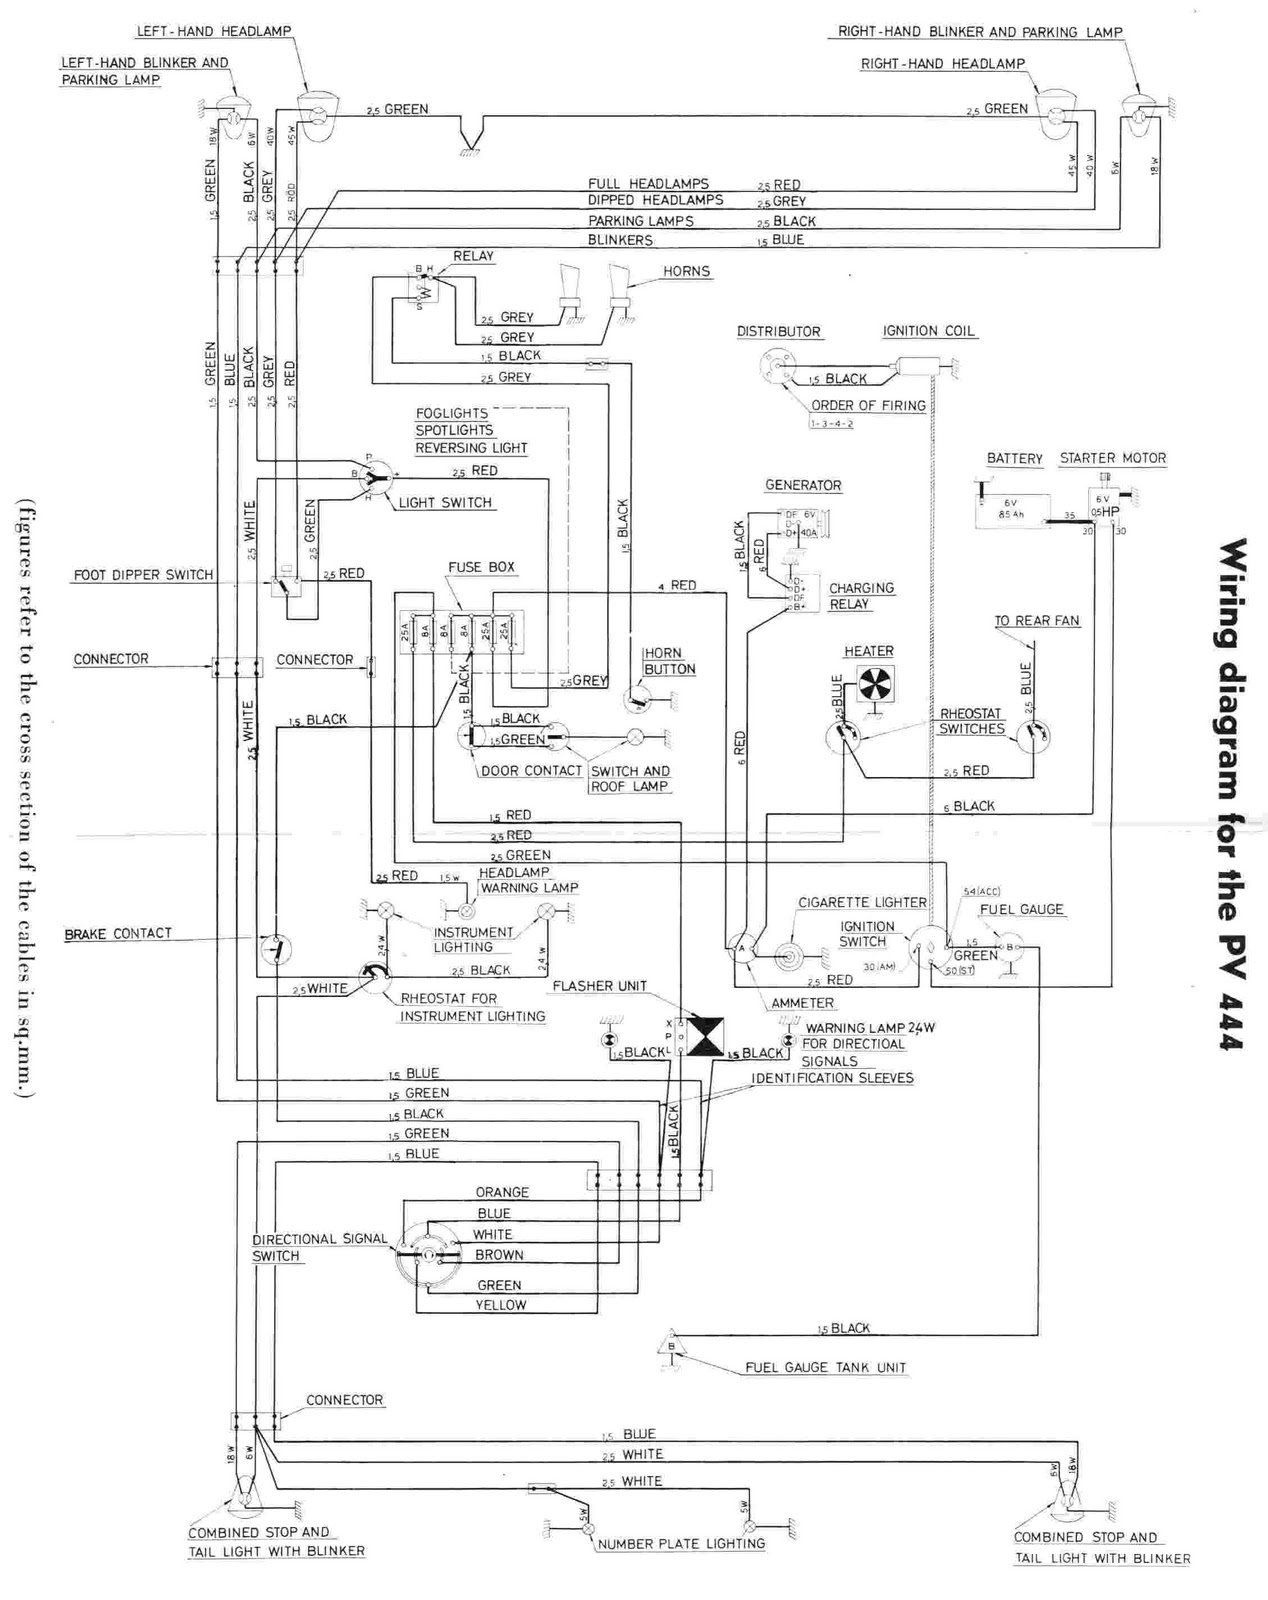 4 3 Volvo Penta Alternator Wiring Diagram S10 Of Pv444 | All About Diagrams